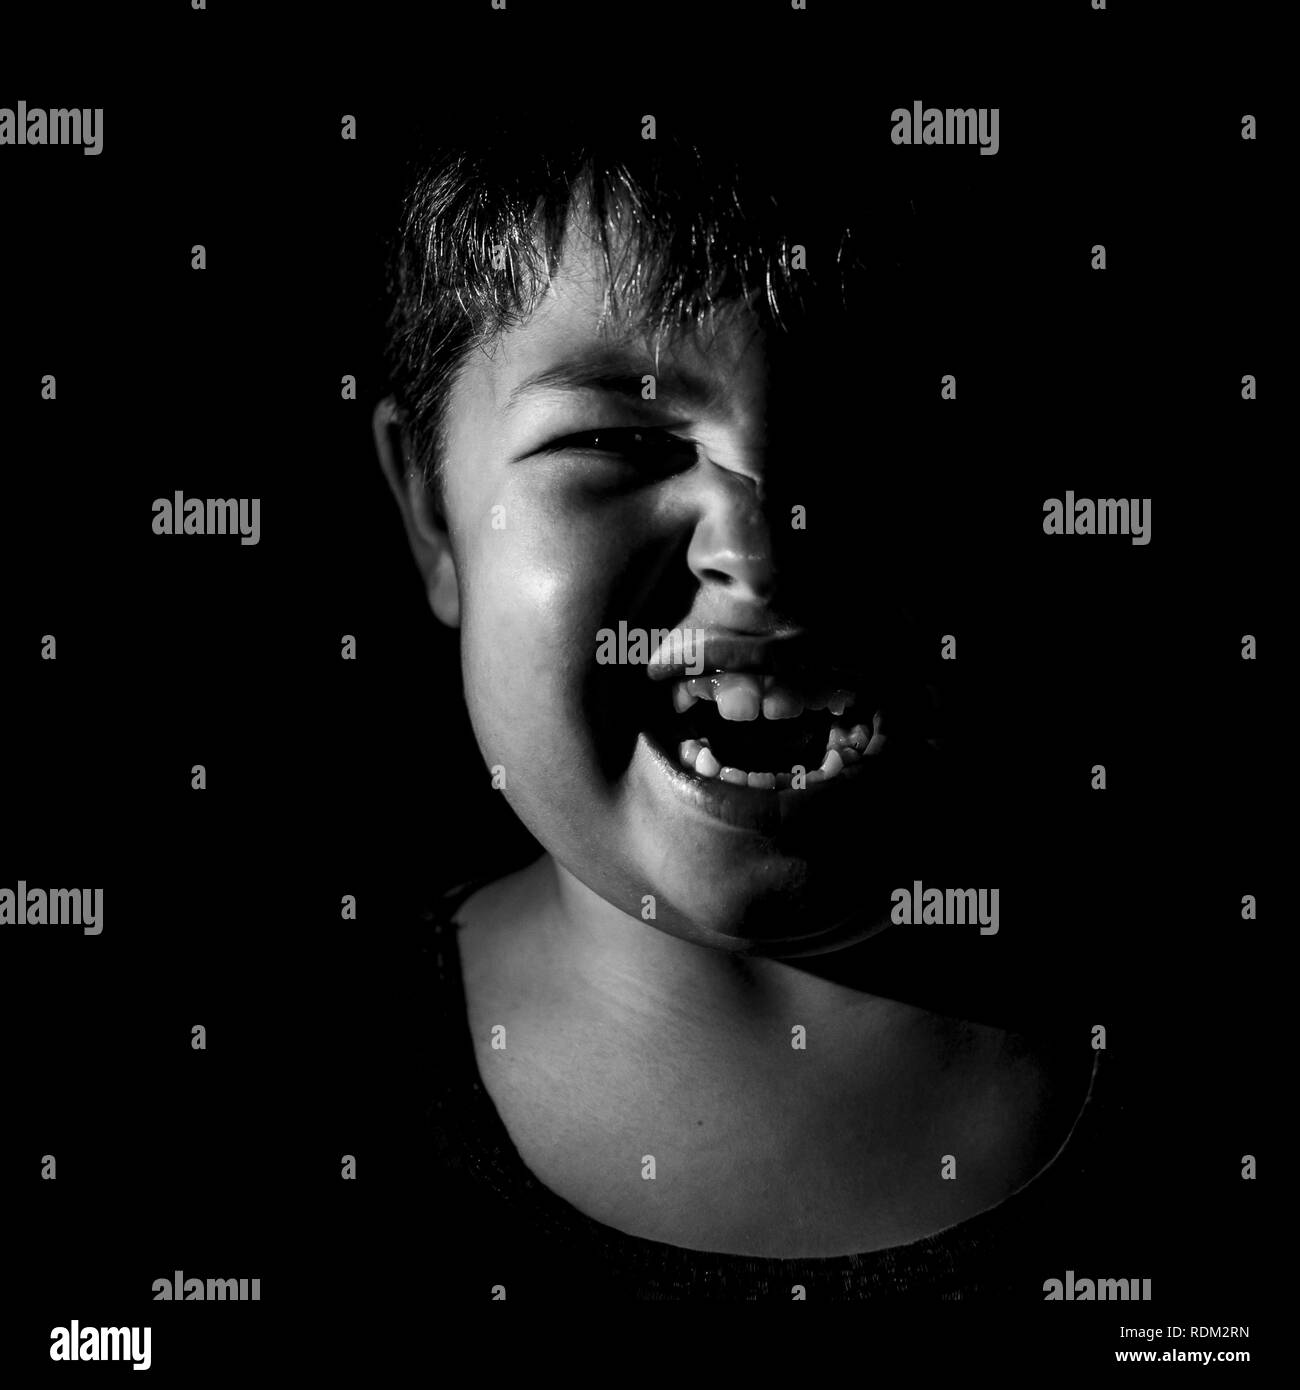 Portrait of anger young caucasian boy. Scary and agression concept. Black and white shot, low key lighting. Isolated on black. - Stock Image